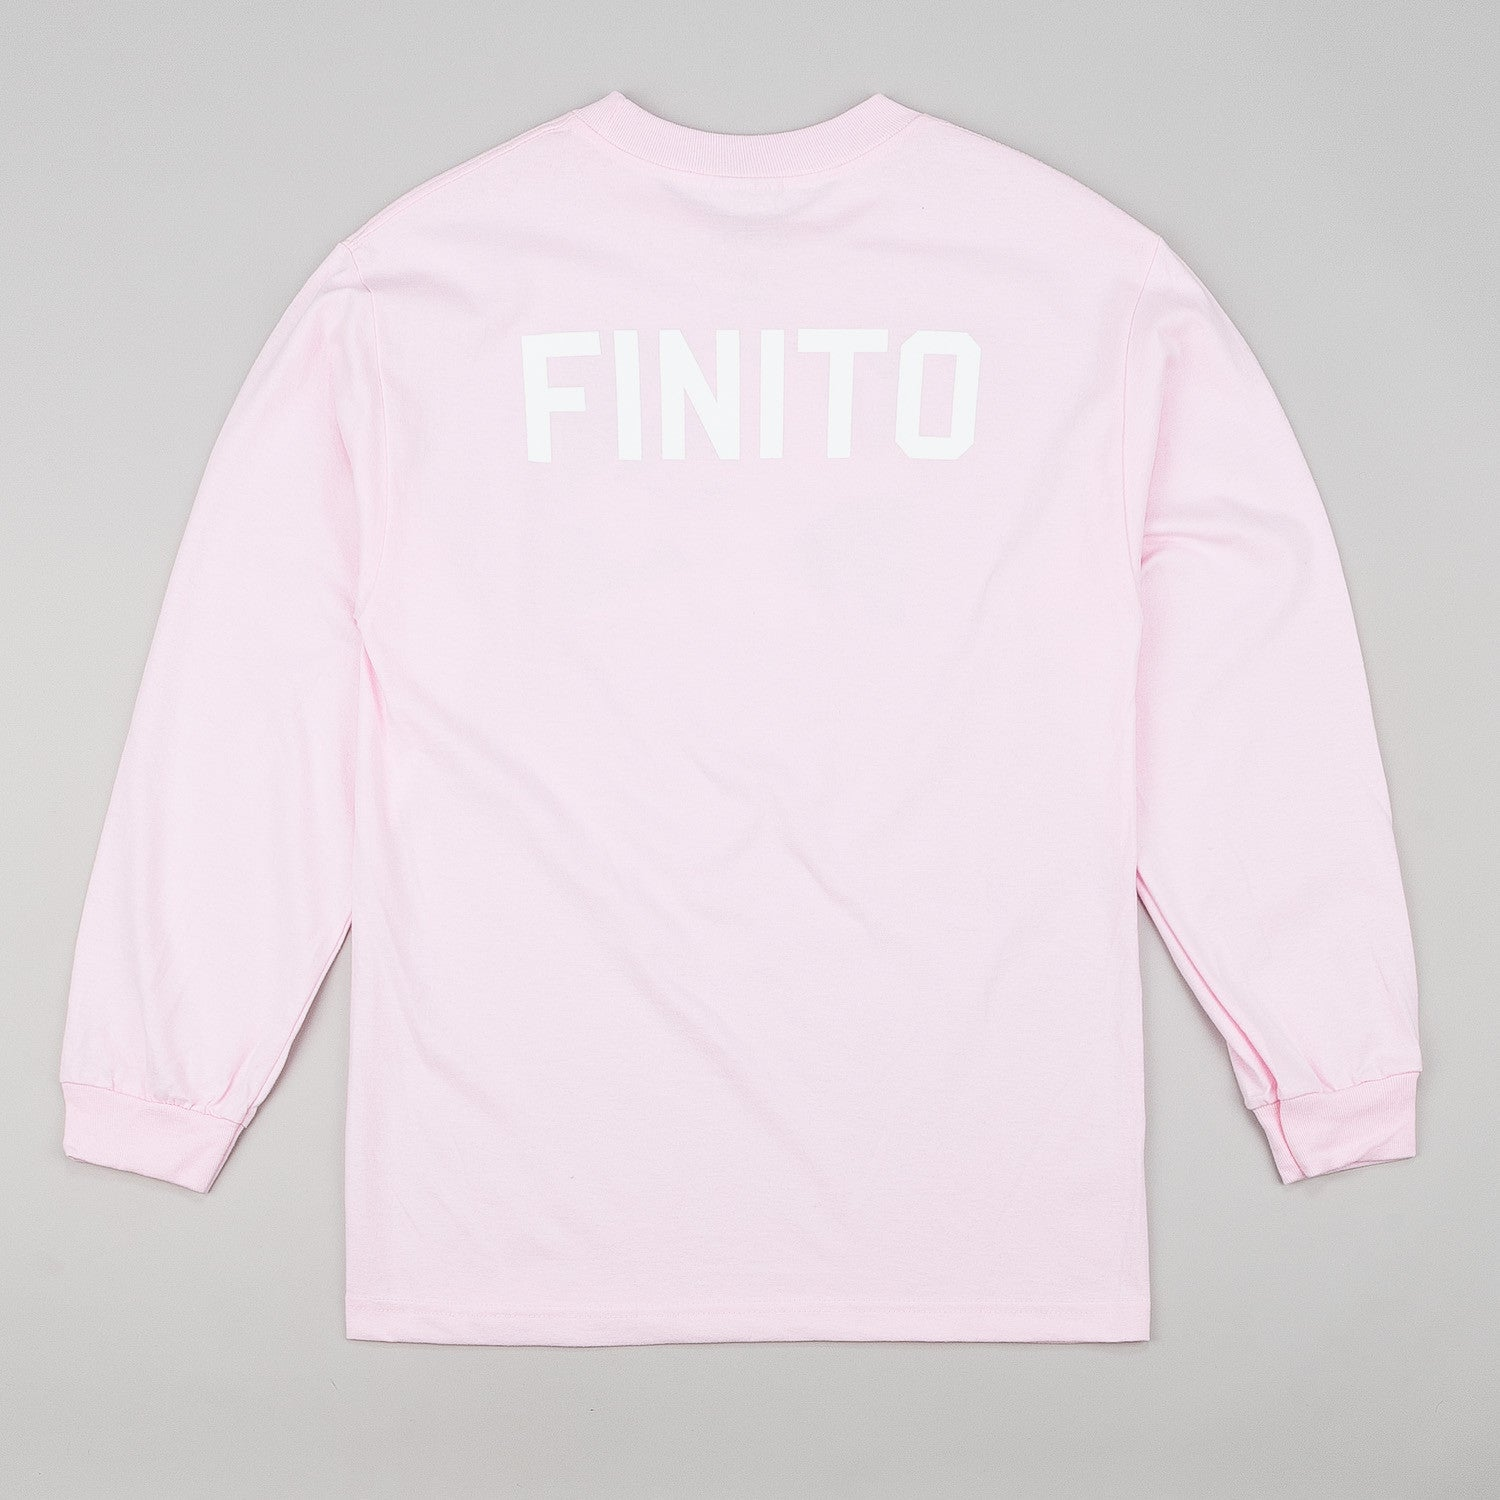 Dertbag Finito L/S T-Shirt - Pink